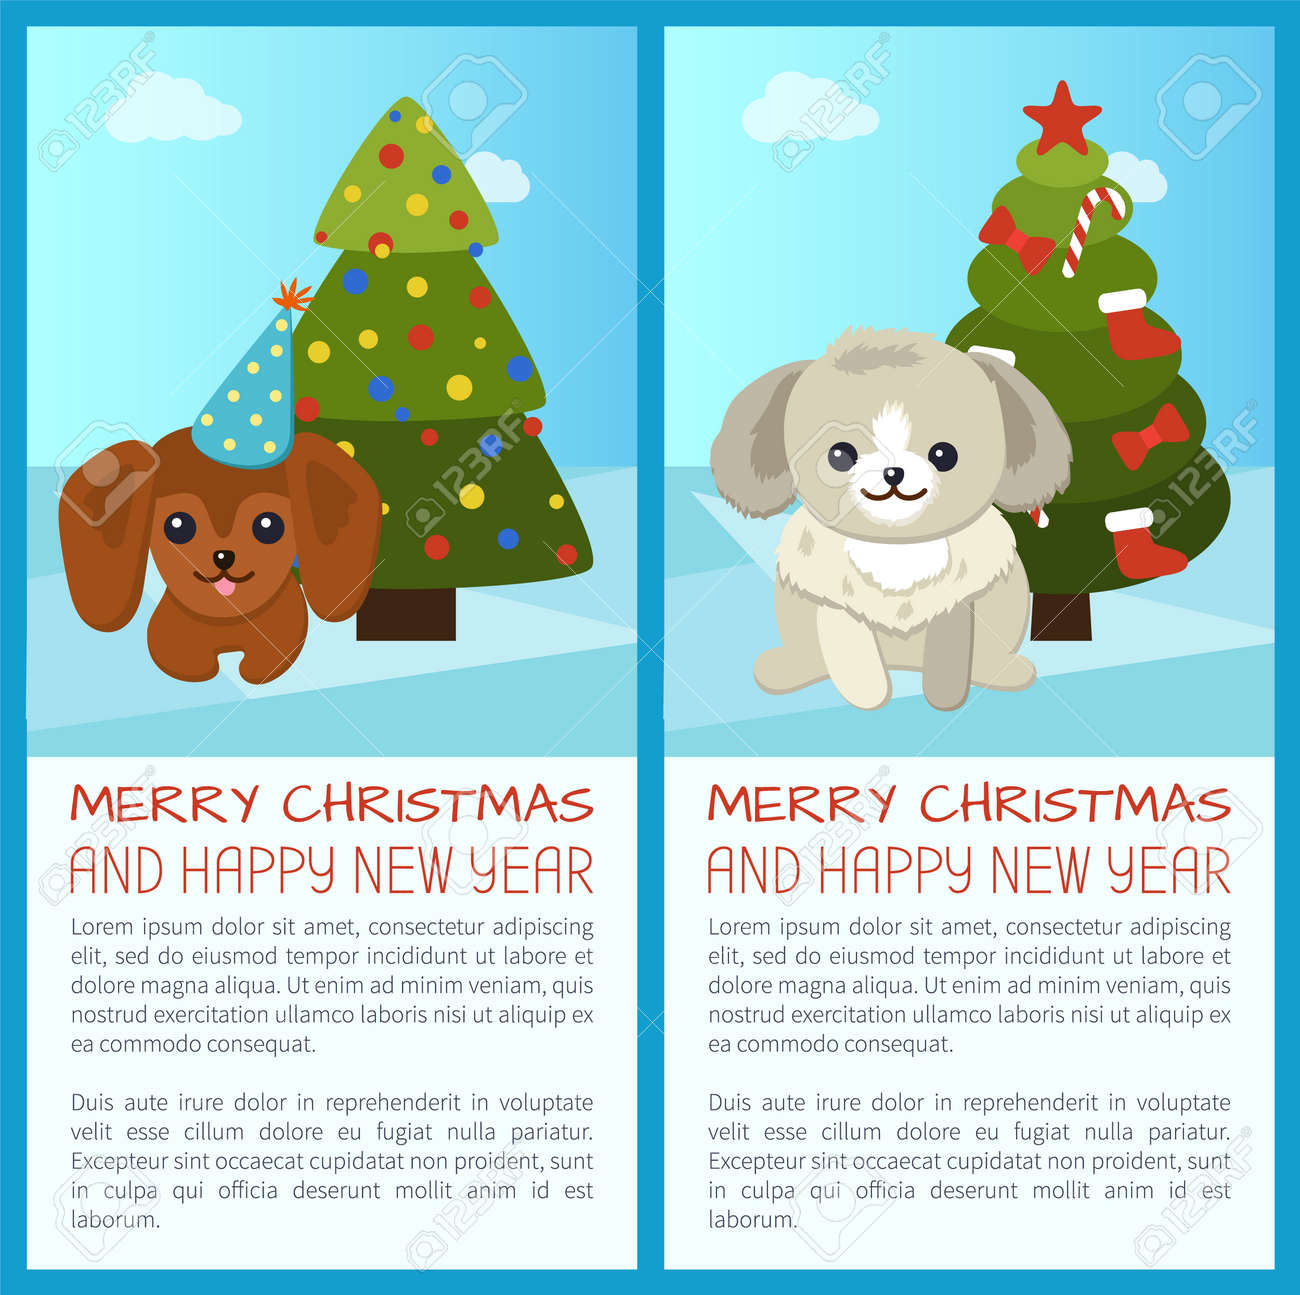 Merry Christmas Greeting Cards. Royalty Free Cliparts, Vectors, And ...